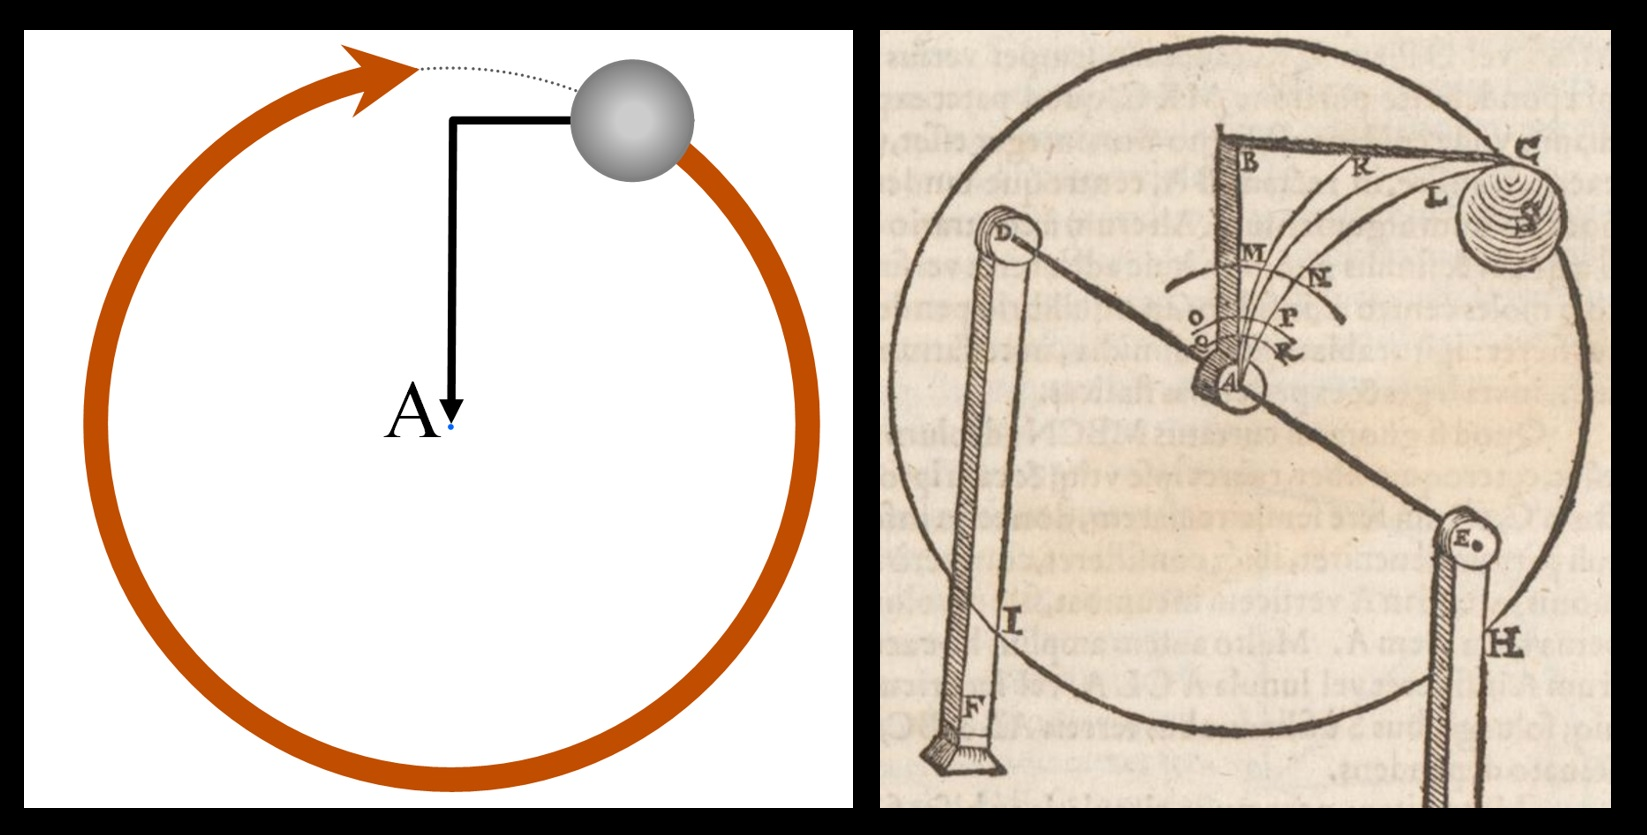 Left—as Earth is imagined to shrink to a point, the ball swings in a circle around the Earth. Right—Locher's diagram of this. Curves MN, OP, and QR are the surface of the Earth, imagined smaller and smaller. S is the iron ball. A is the center of the universe. Circle CHIC is the path of the orbiting ball.